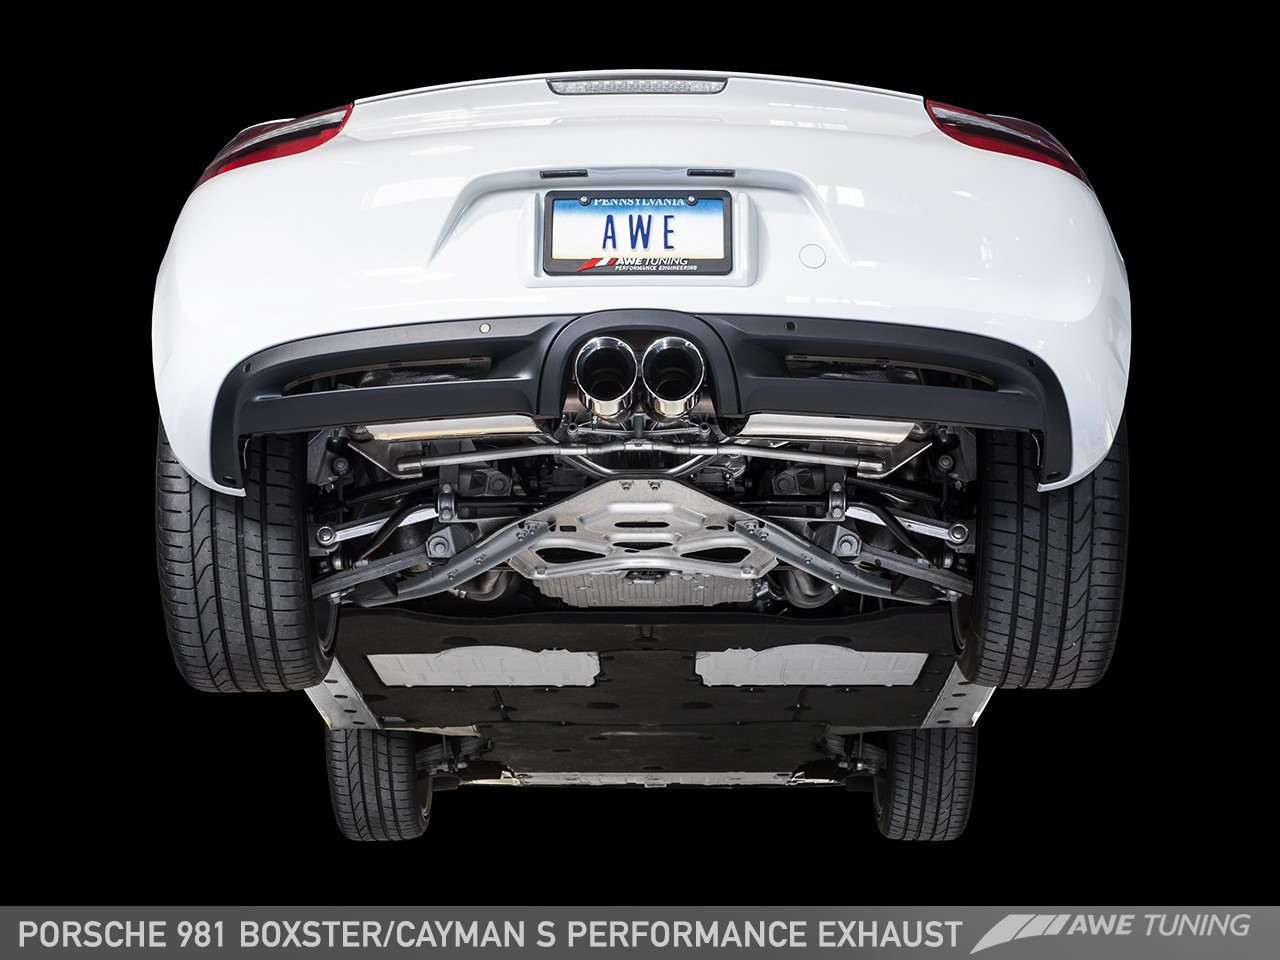 awe performance exhaust for porsche 981